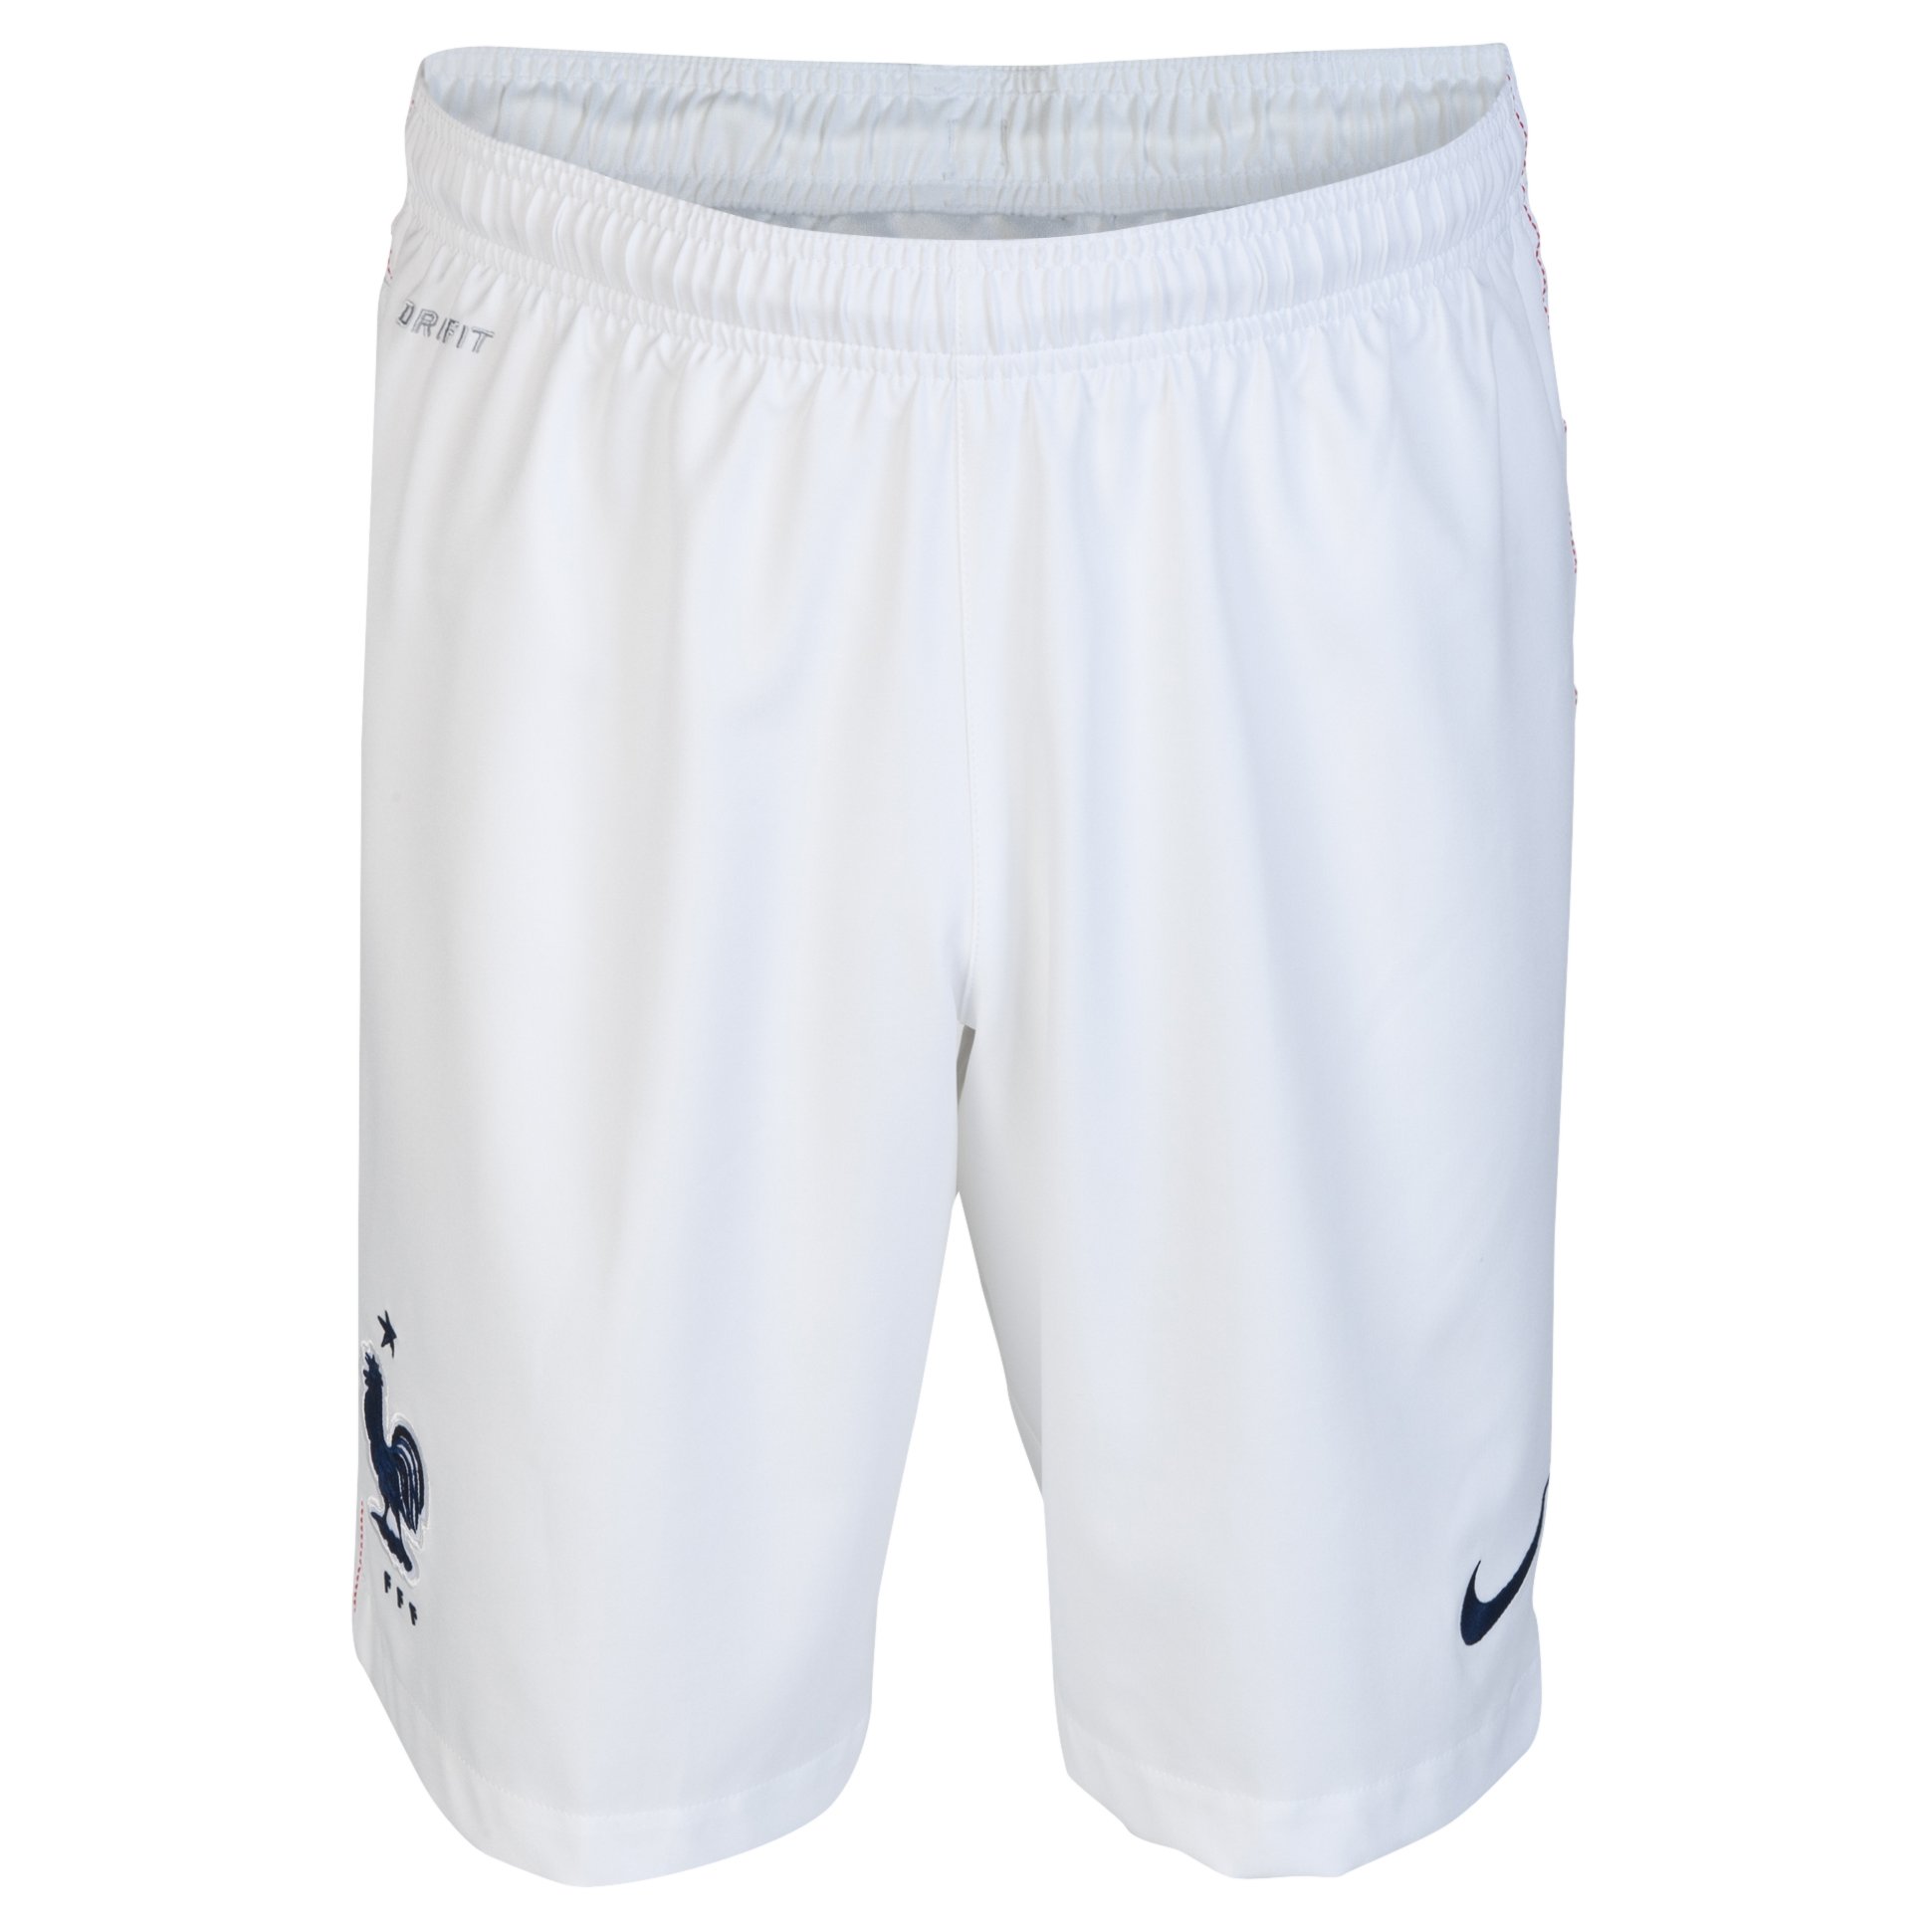 France Home Shorts 2014/15 - Kids White